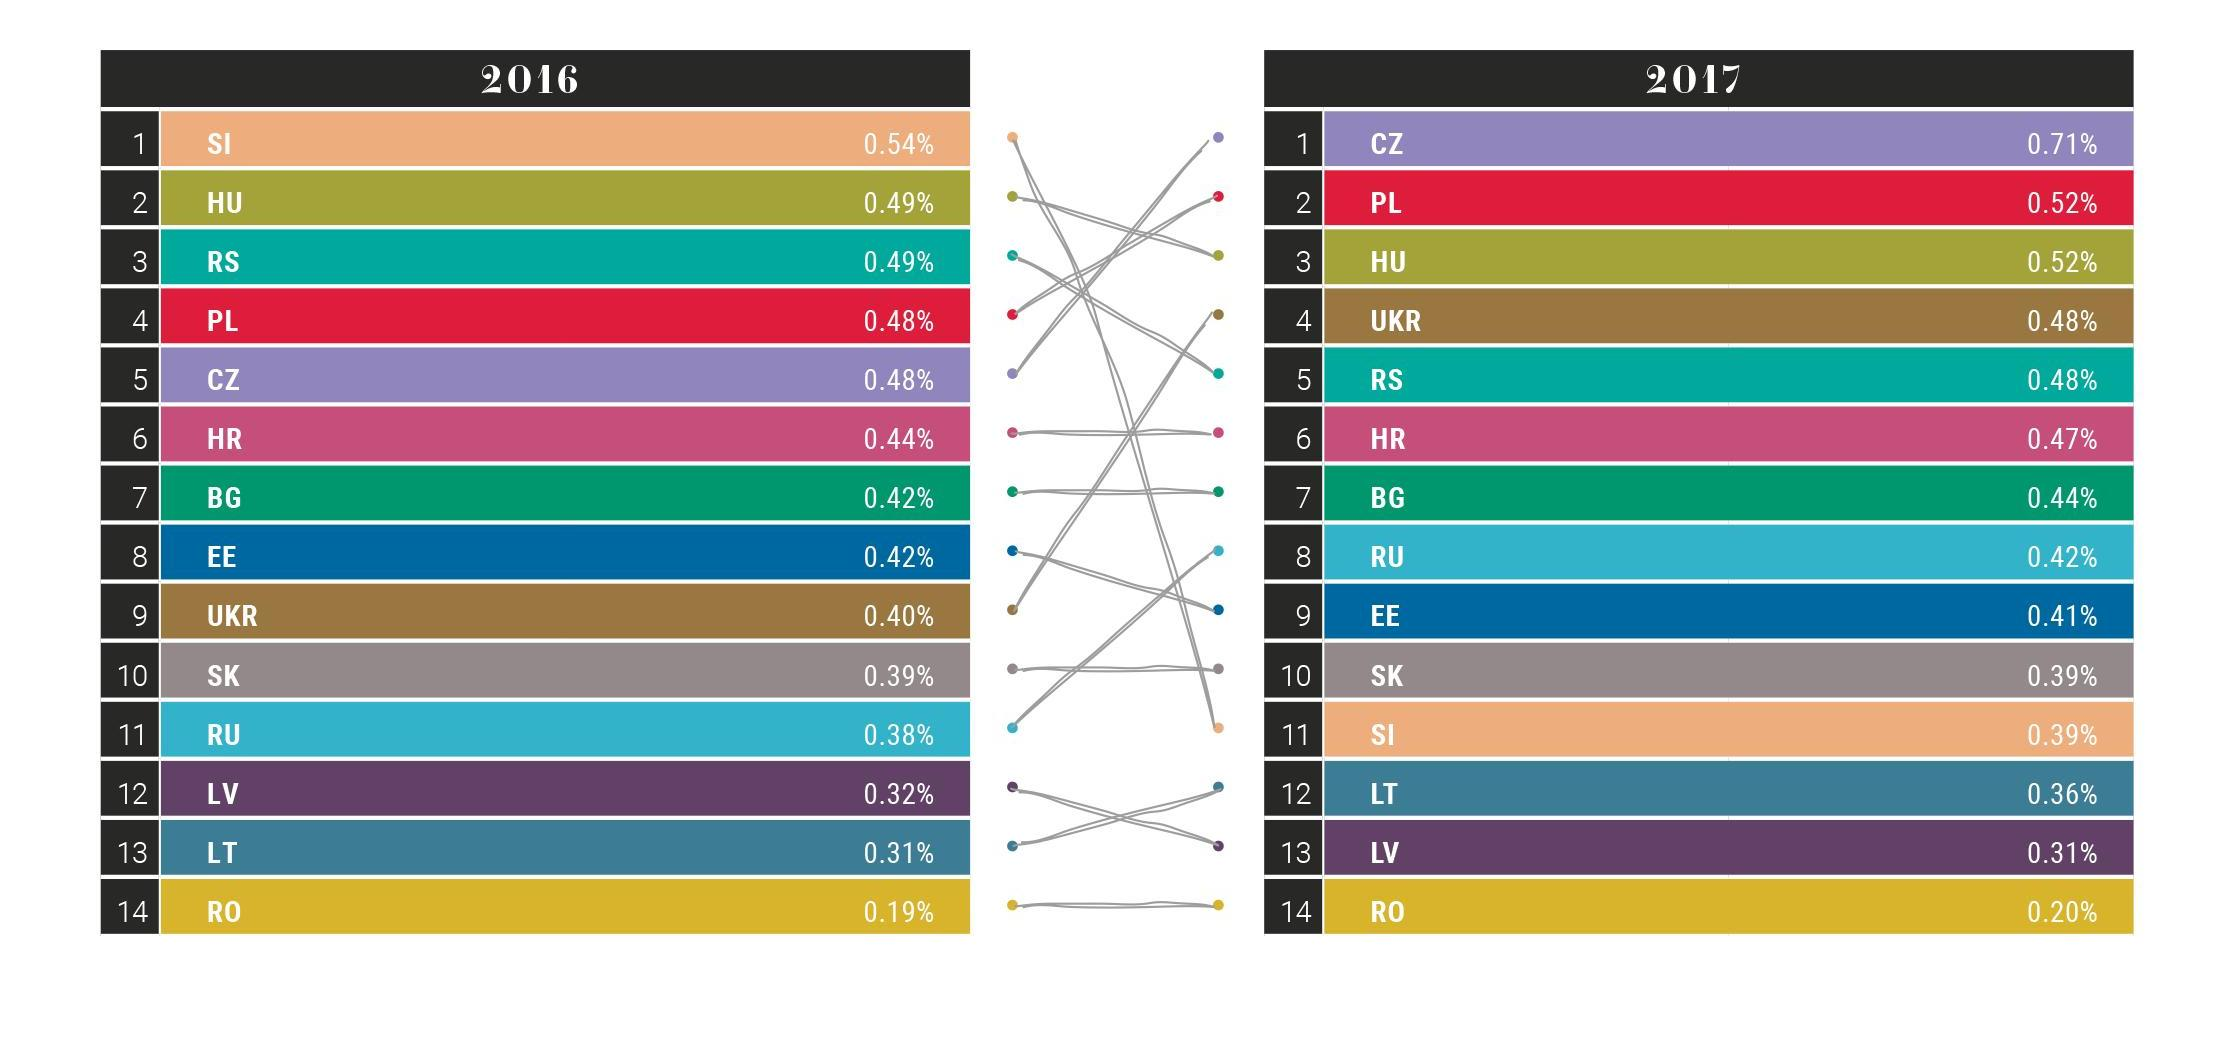 CANnual-Report-weCAN_Ranking_2016v2017